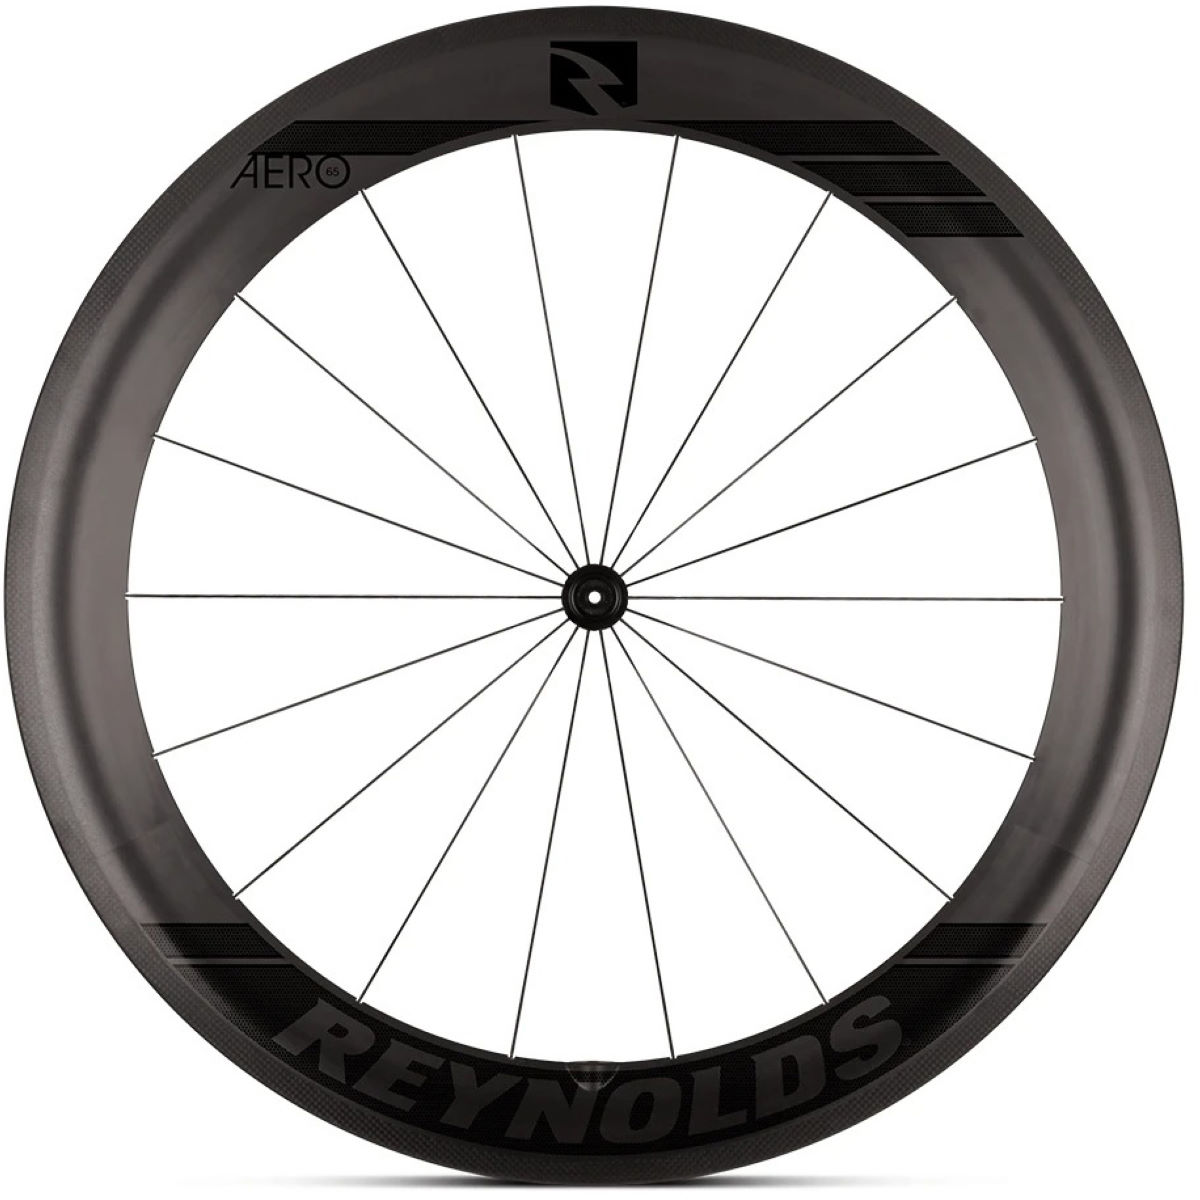 Reynolds Reynolds Aero 65 Carbon Front Road Wheel   Front Wheels